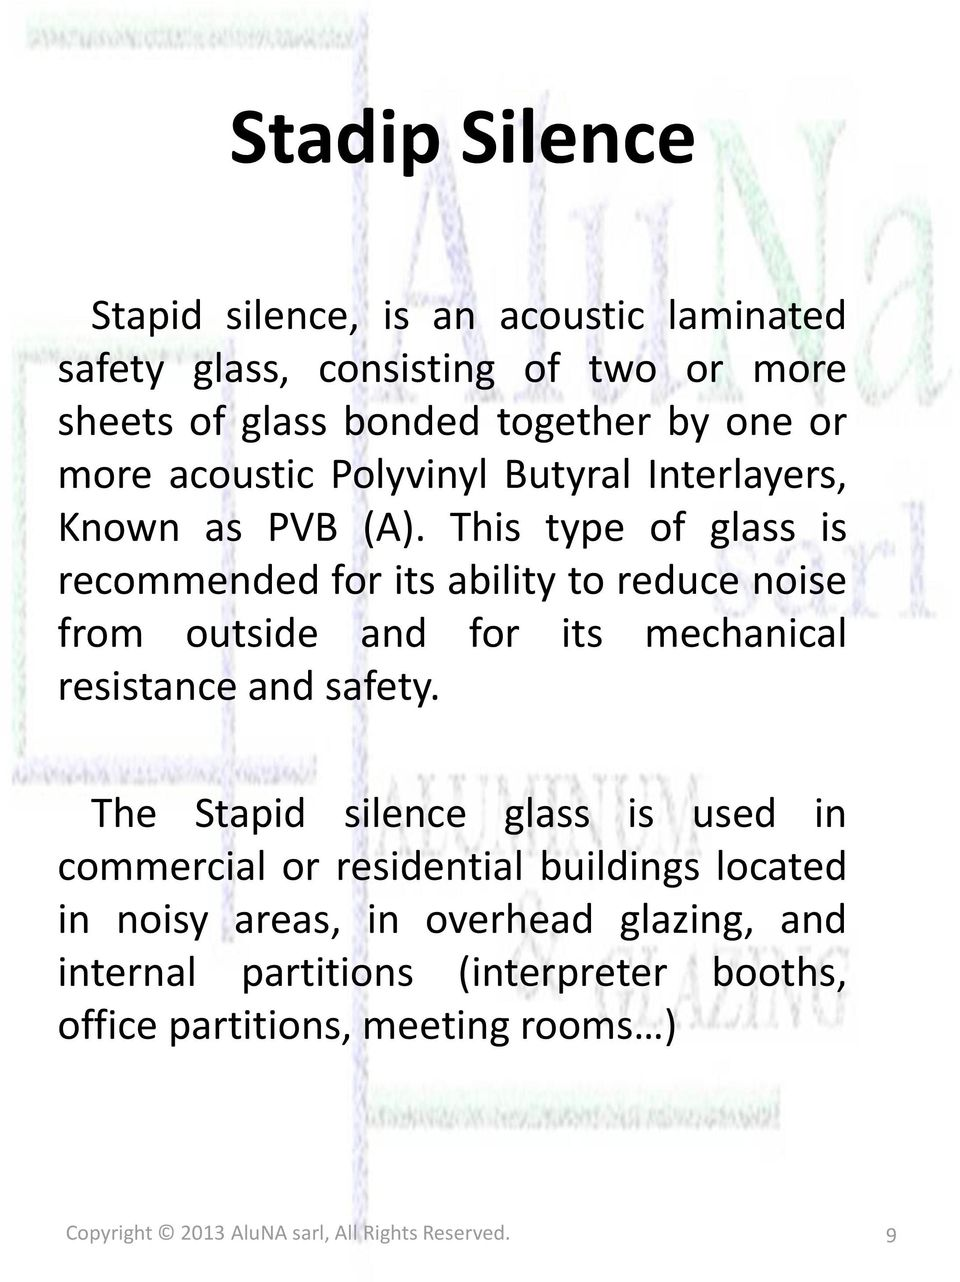 This type of glass is recommended for its ability to reduce noise from outside and for its mechanical resistance and safety.